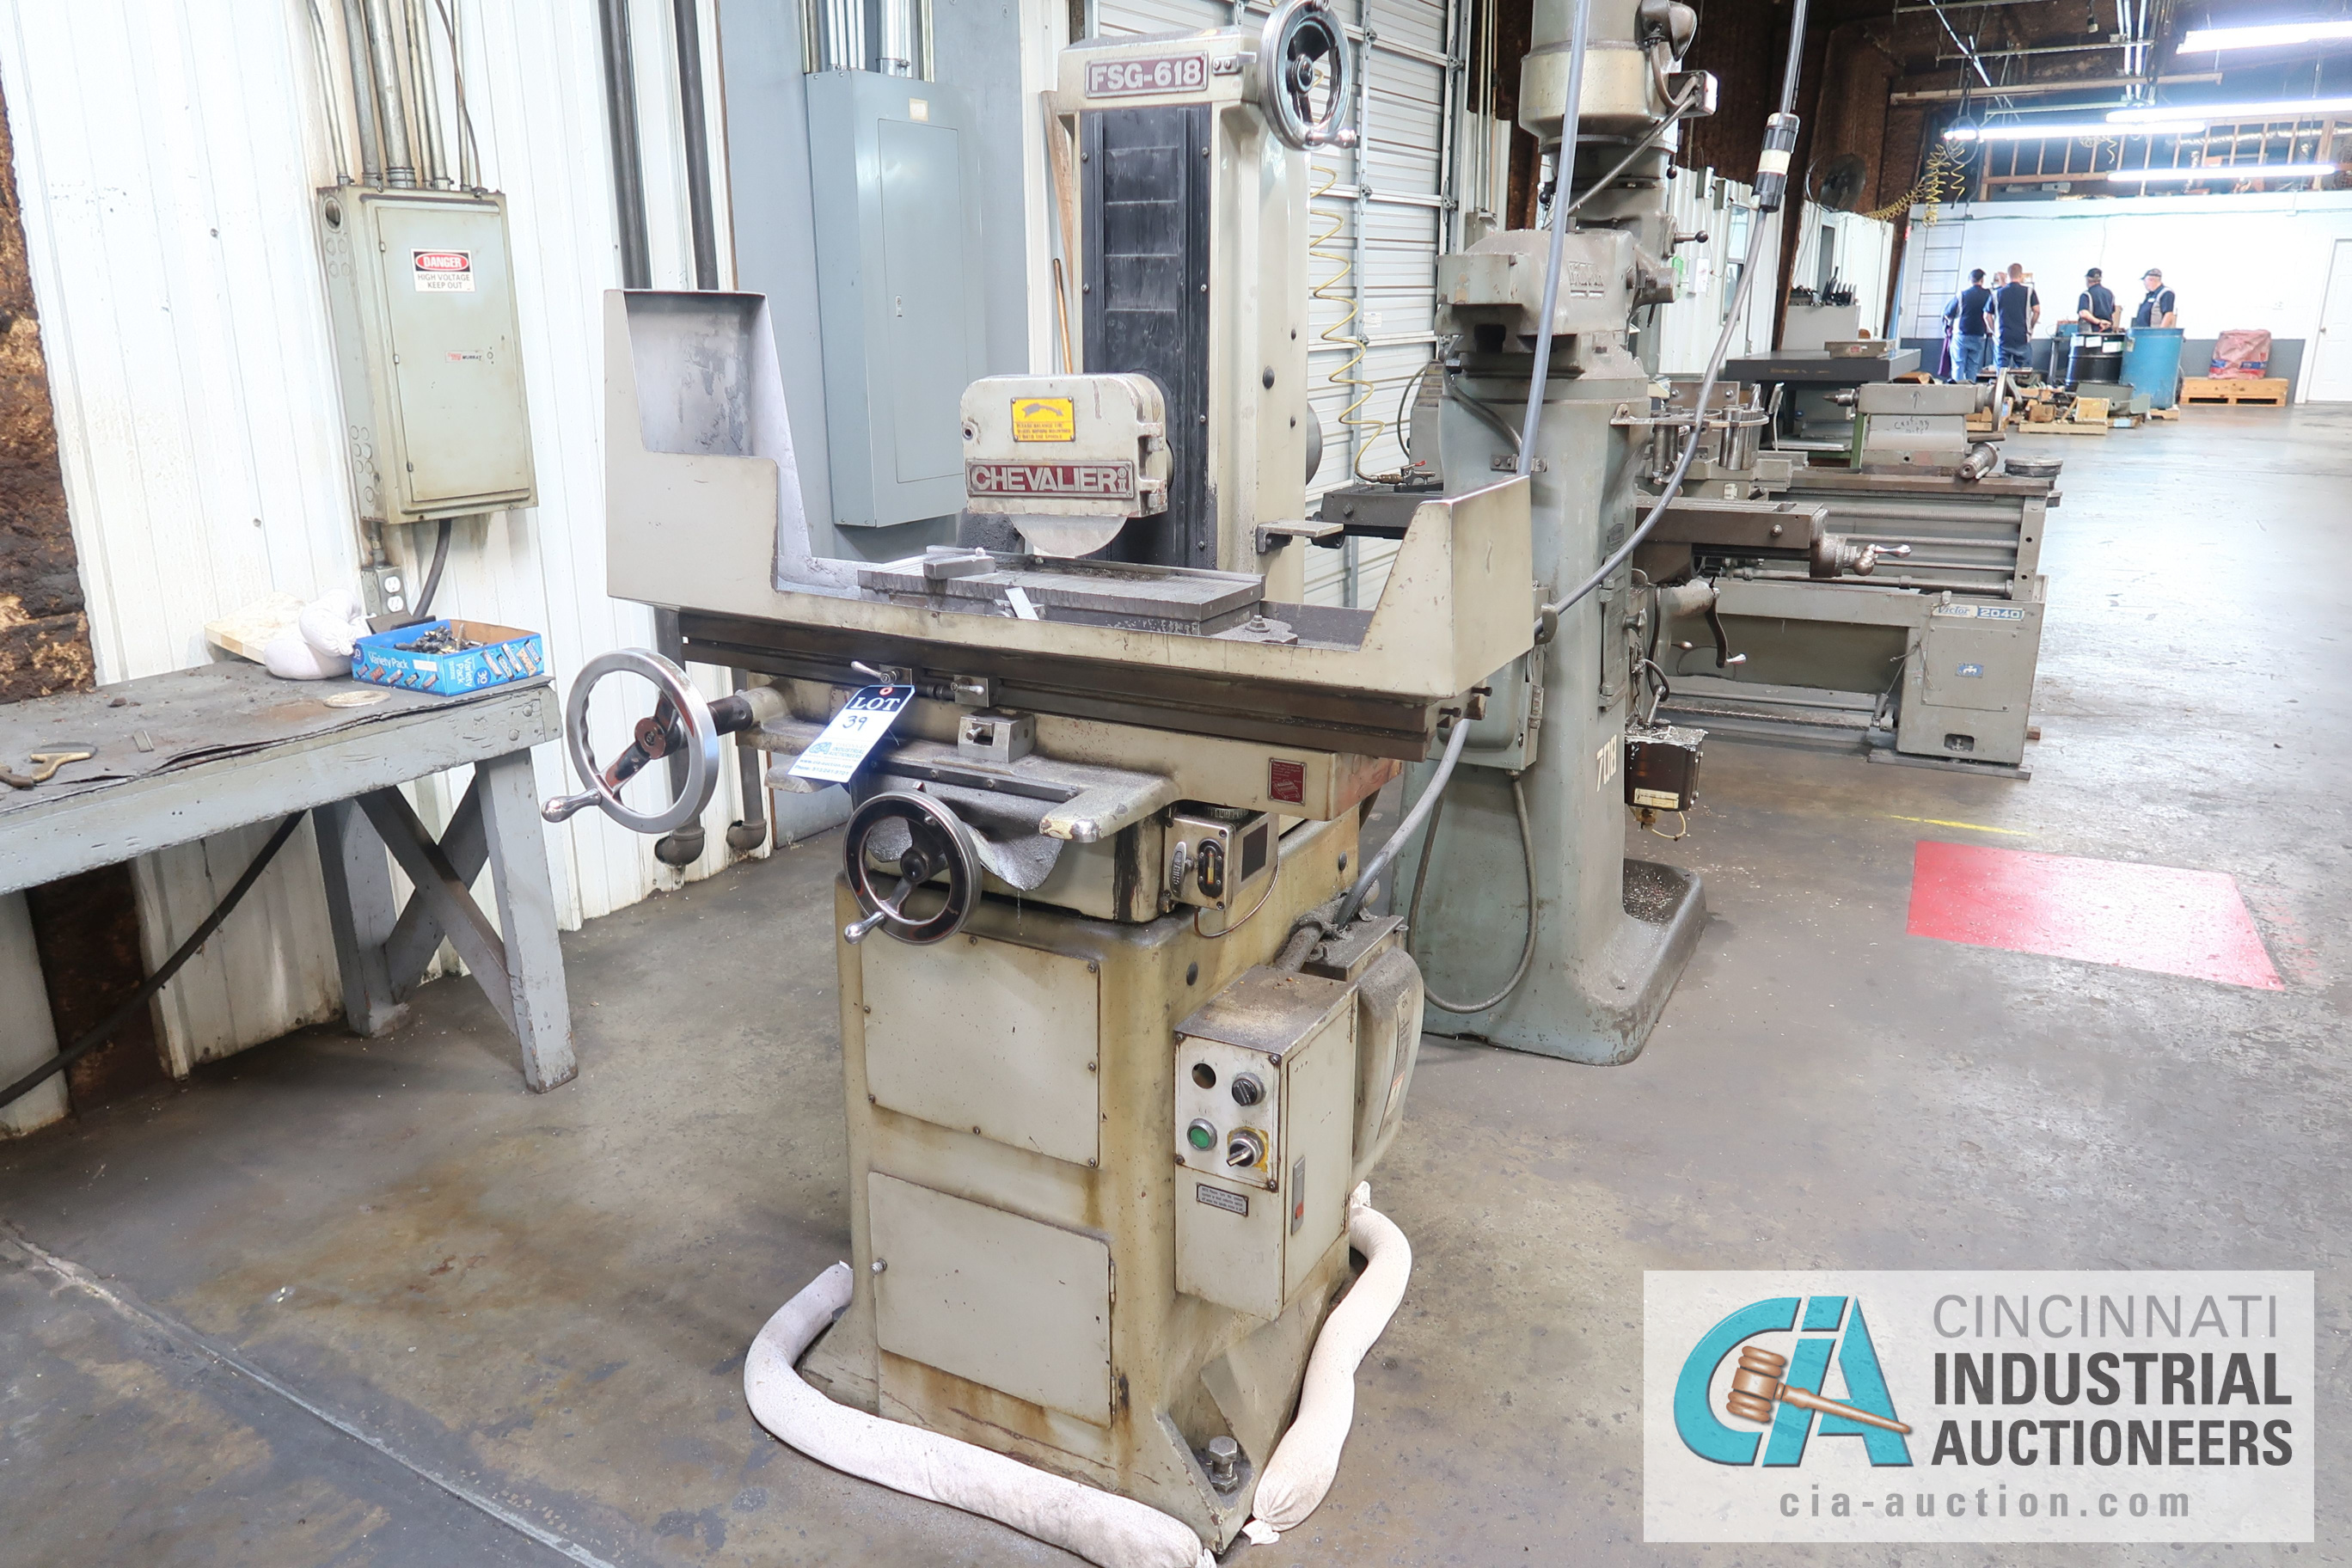 """6"""" X 18"""" CHEVALIER MODEL FSG618 HAND FEED SURFACE GRINDER; S/N 02C-5136"""